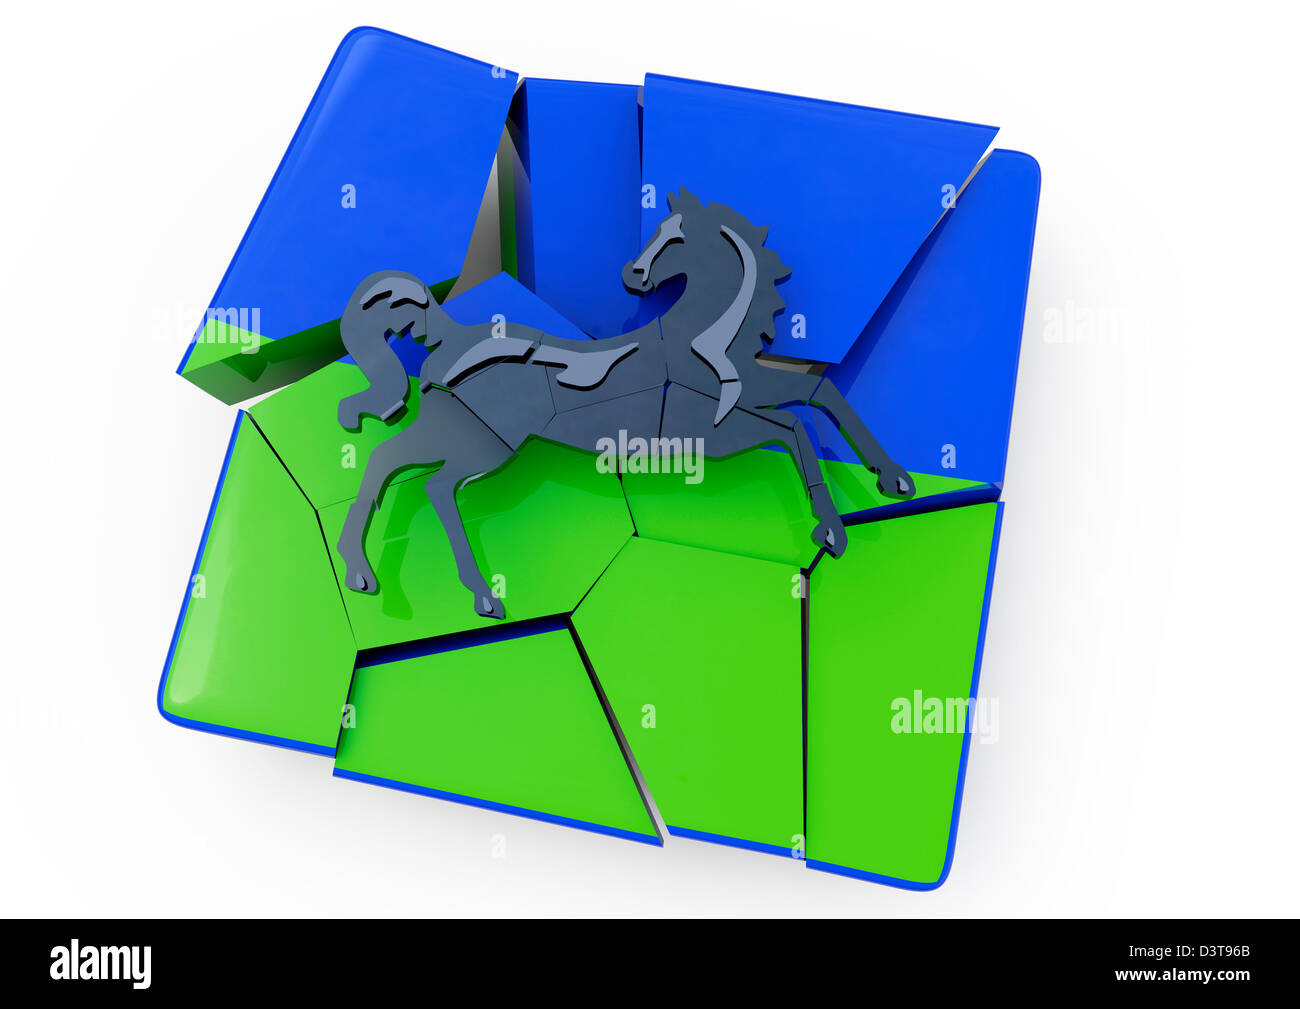 3D render of a cracking and crumbling Lloyds TSB logo - Concept - White background - Stock Image